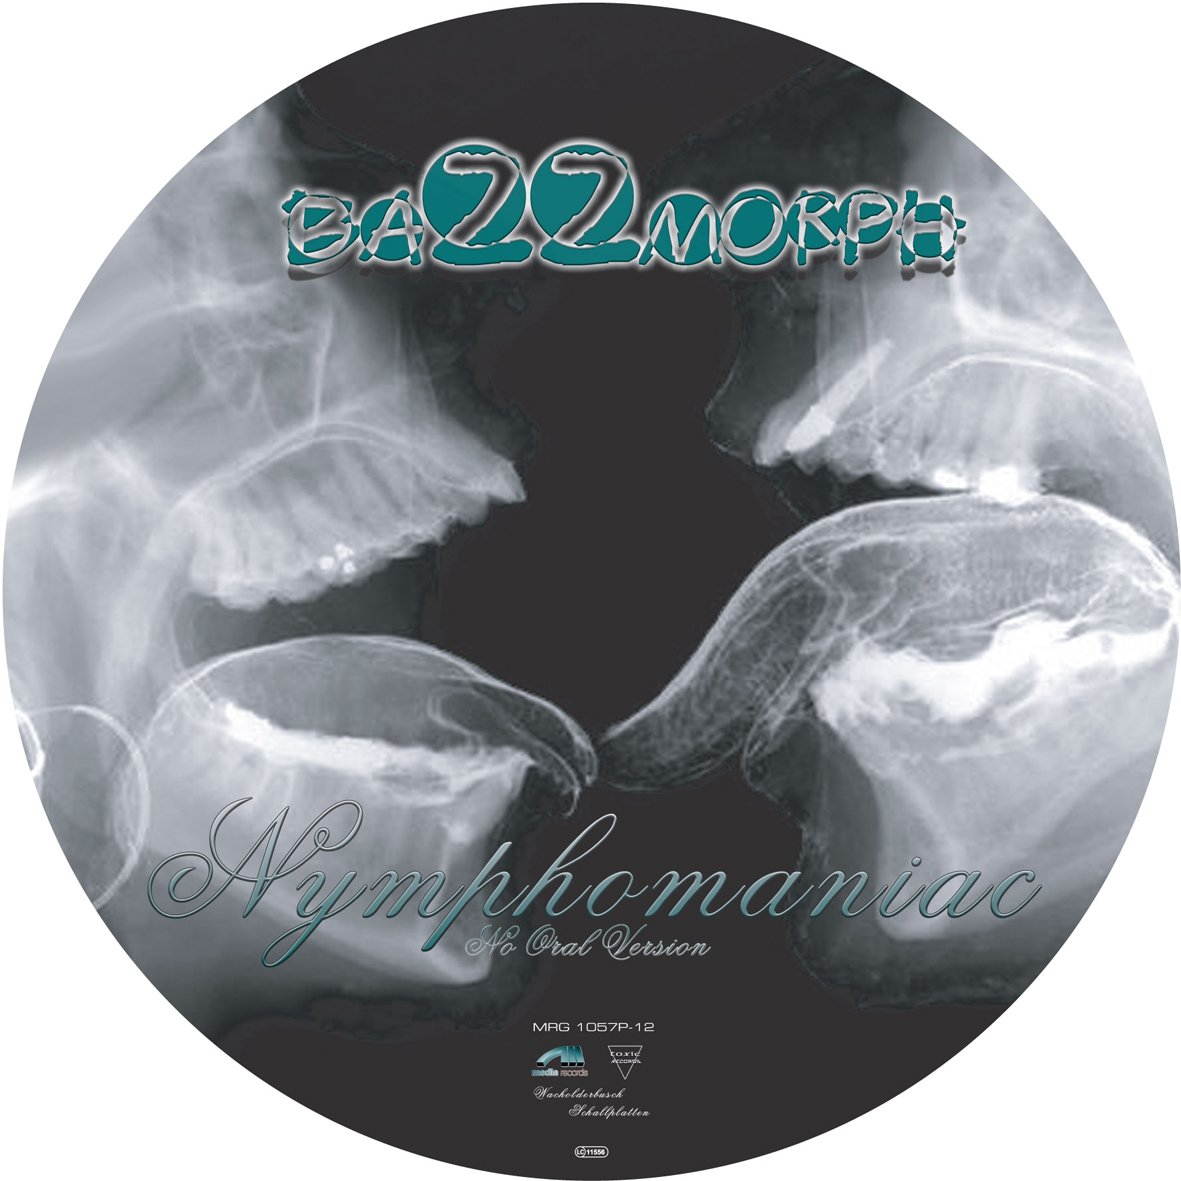 Bazzmorph Bazzmorph. Nymphomaniac (LP, Picture Disc)